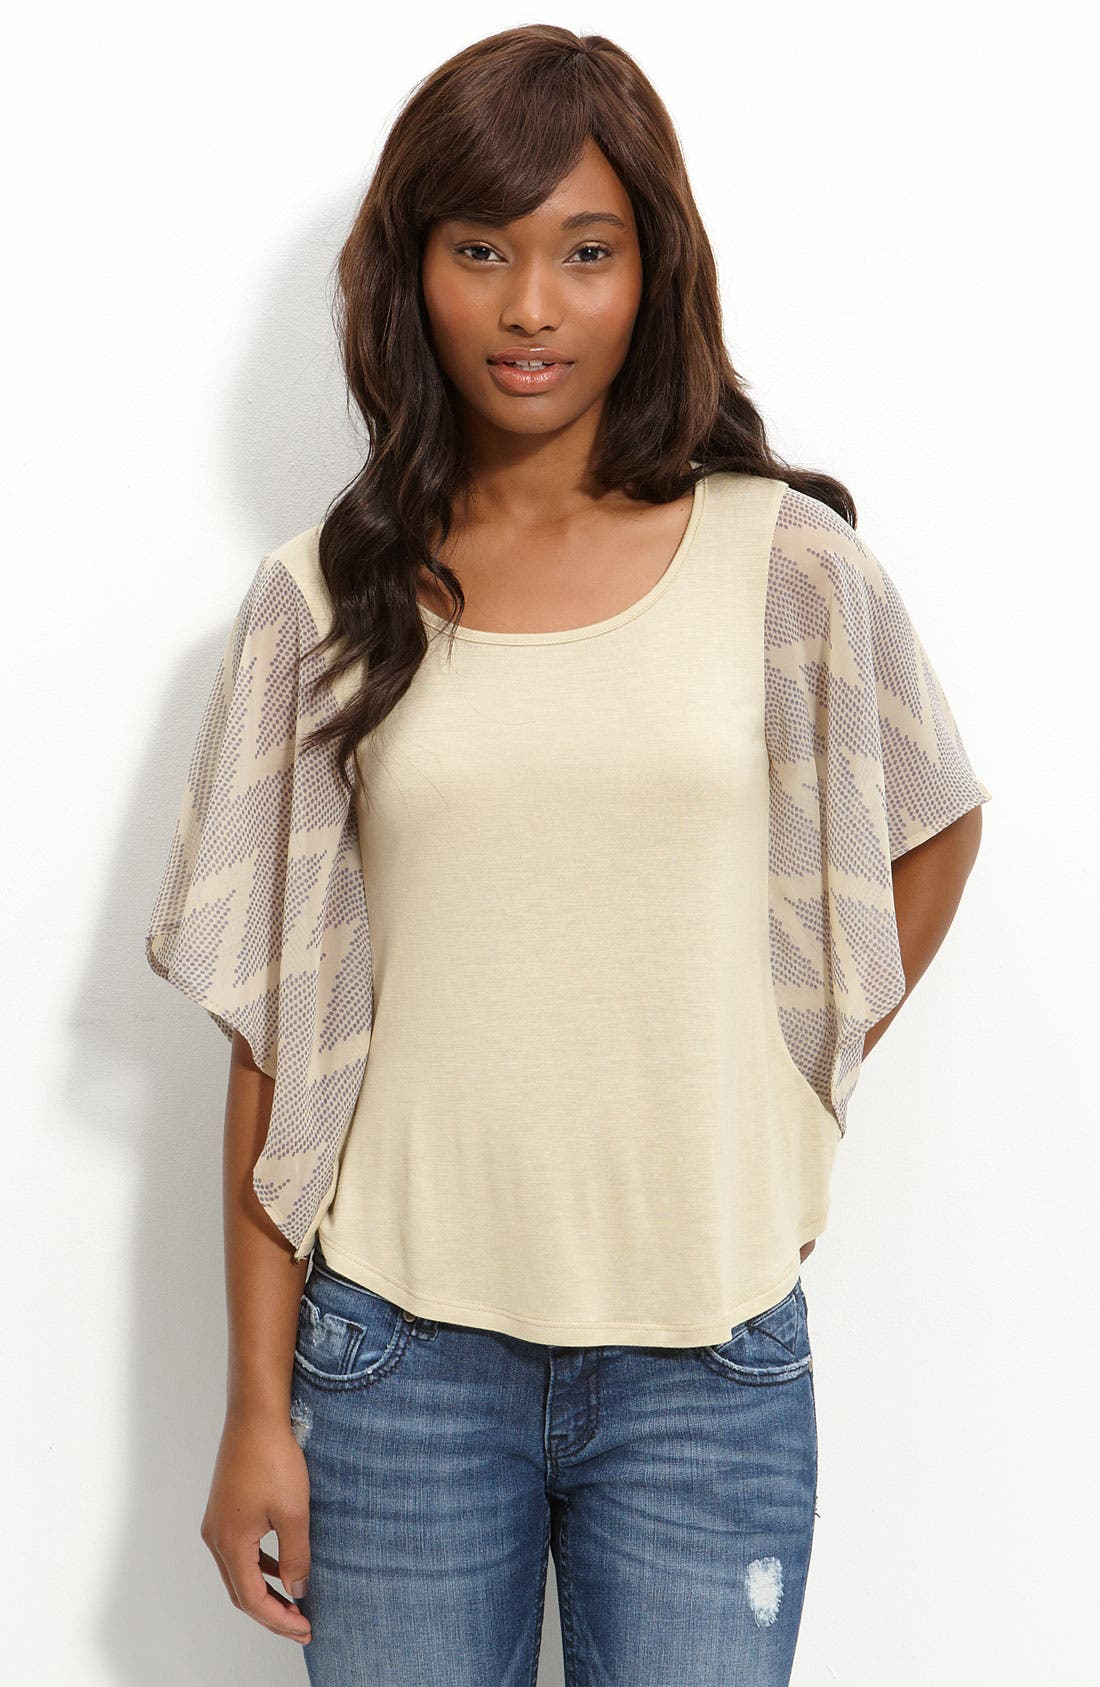 Alternate Image 1 Selected - h.i.p. Chiffon Sleeve Knit Top (Juniors)